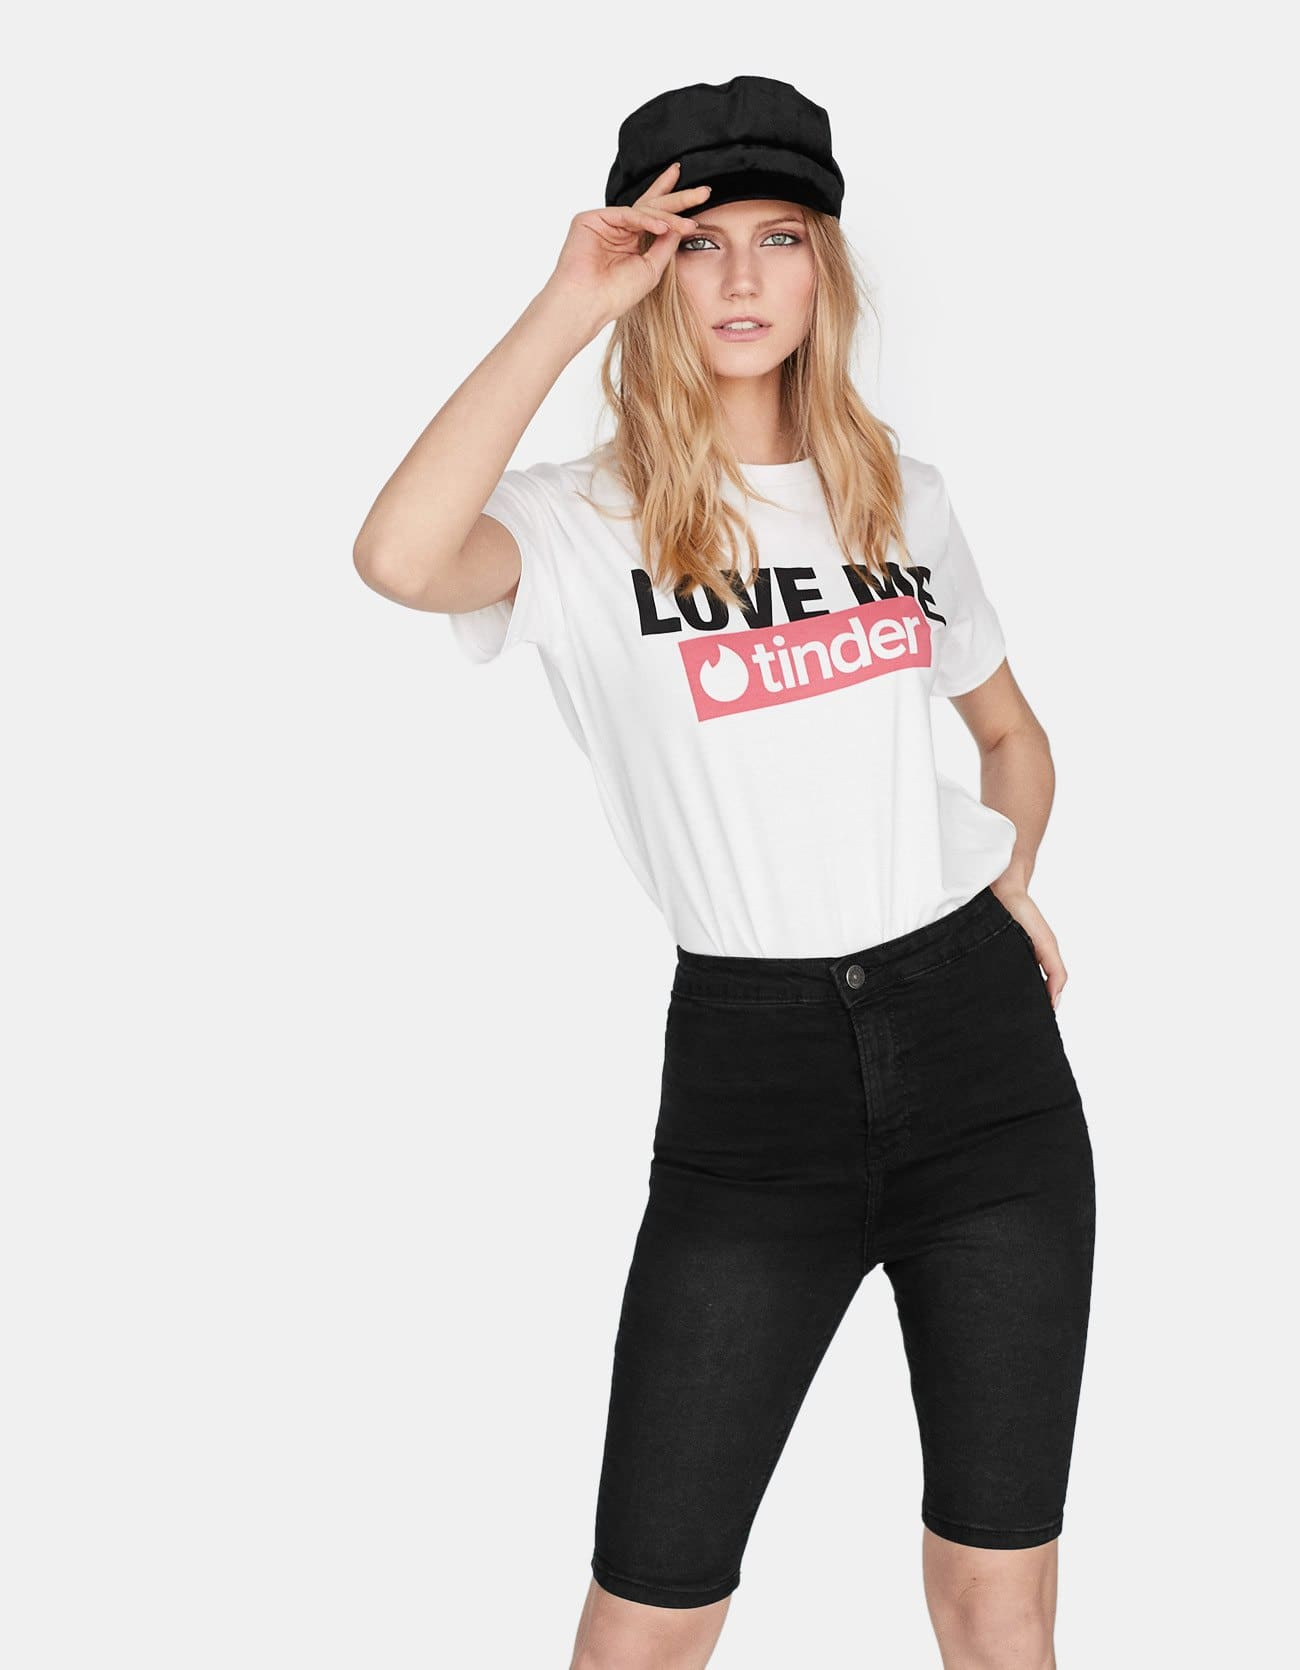 T-shirt con stampa a 12,99 euro